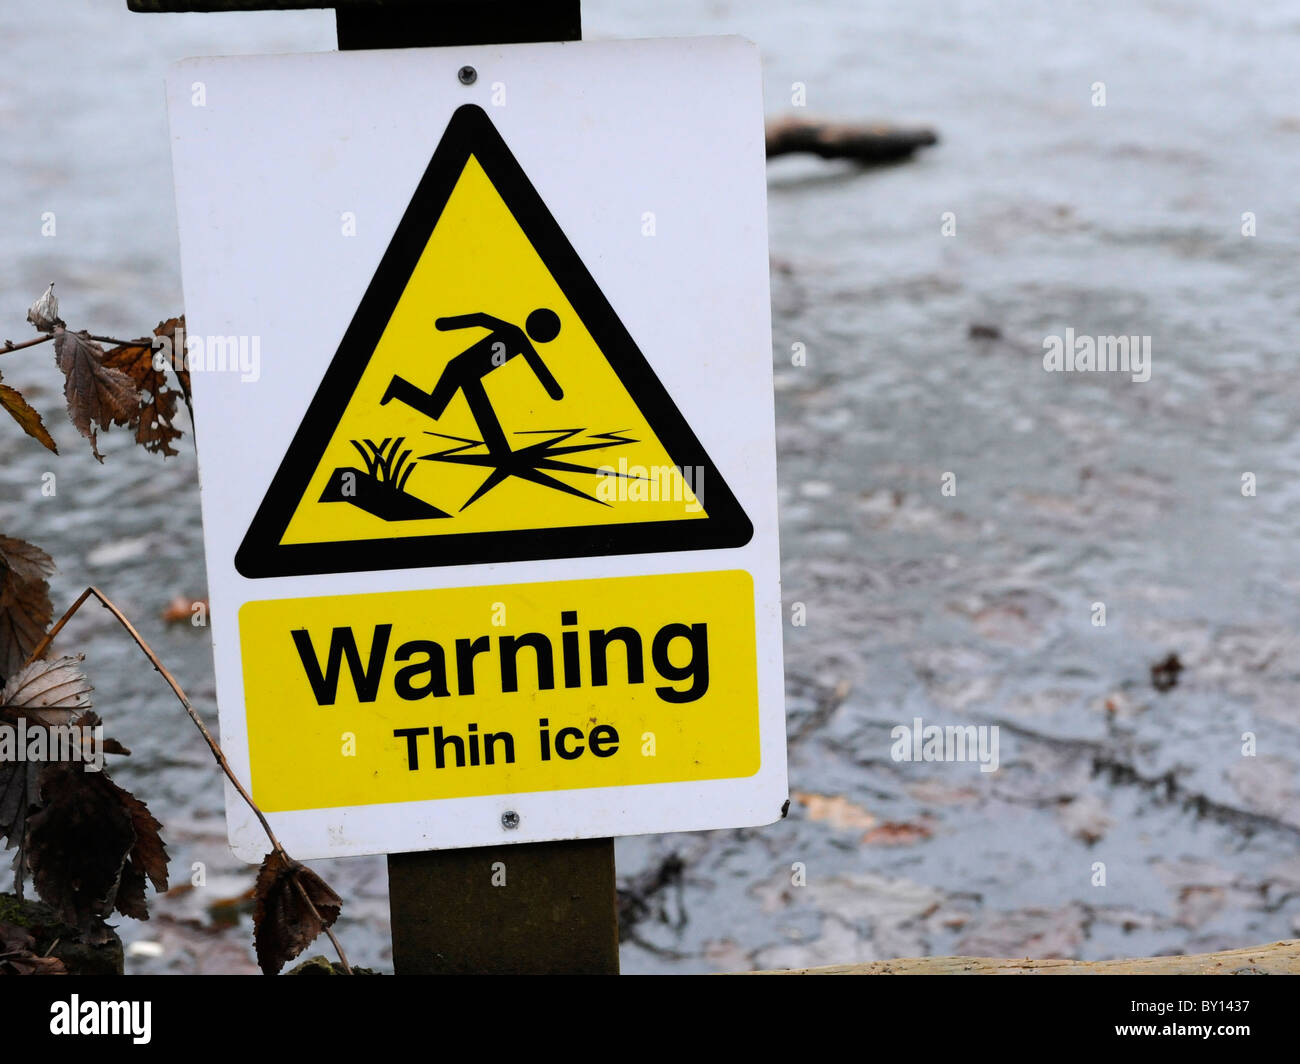 Warning sign that says Warning Thin Ice. - Stock Image